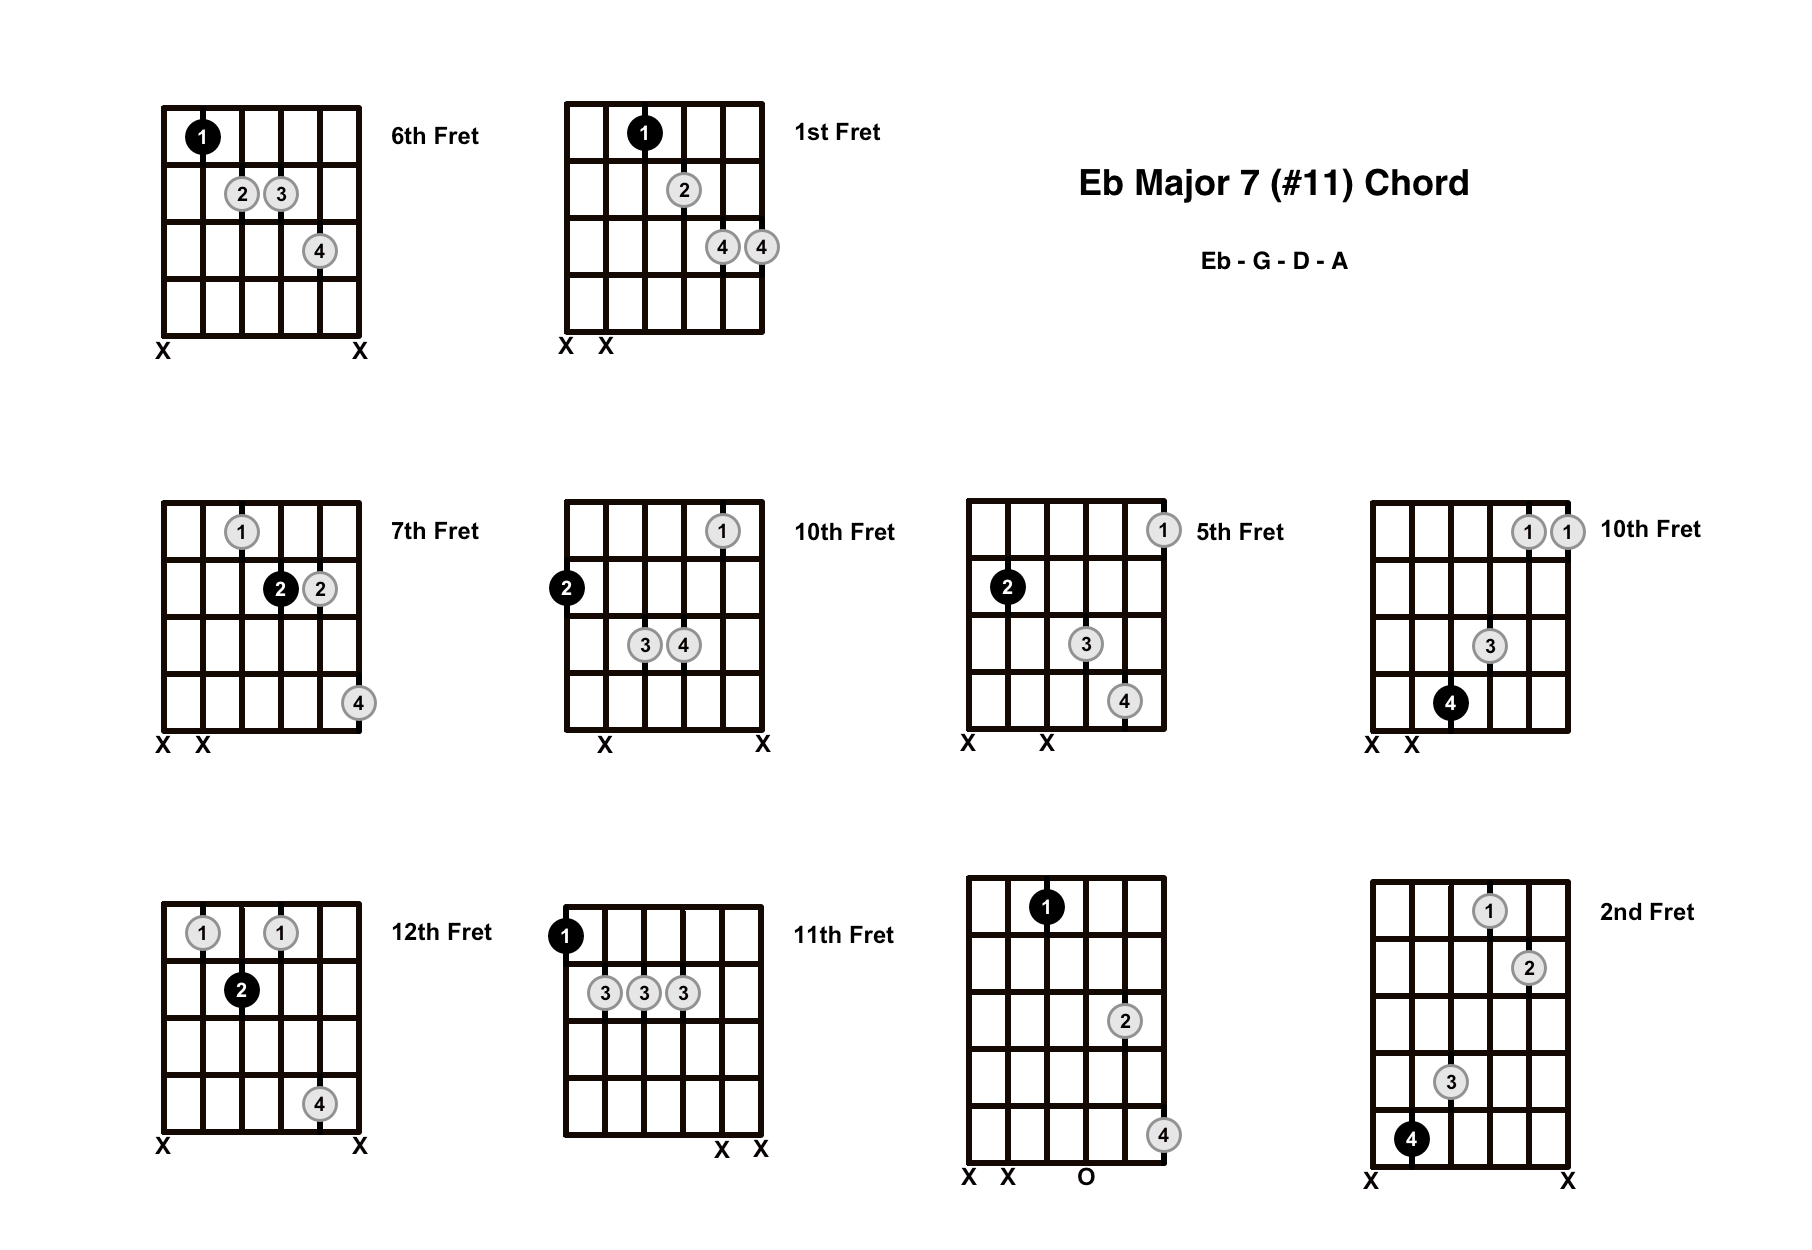 Ebmaj7#11 Chord On The Guitar (E Flat Major 7 #11) – Diagrams, Finger Positions and Theory